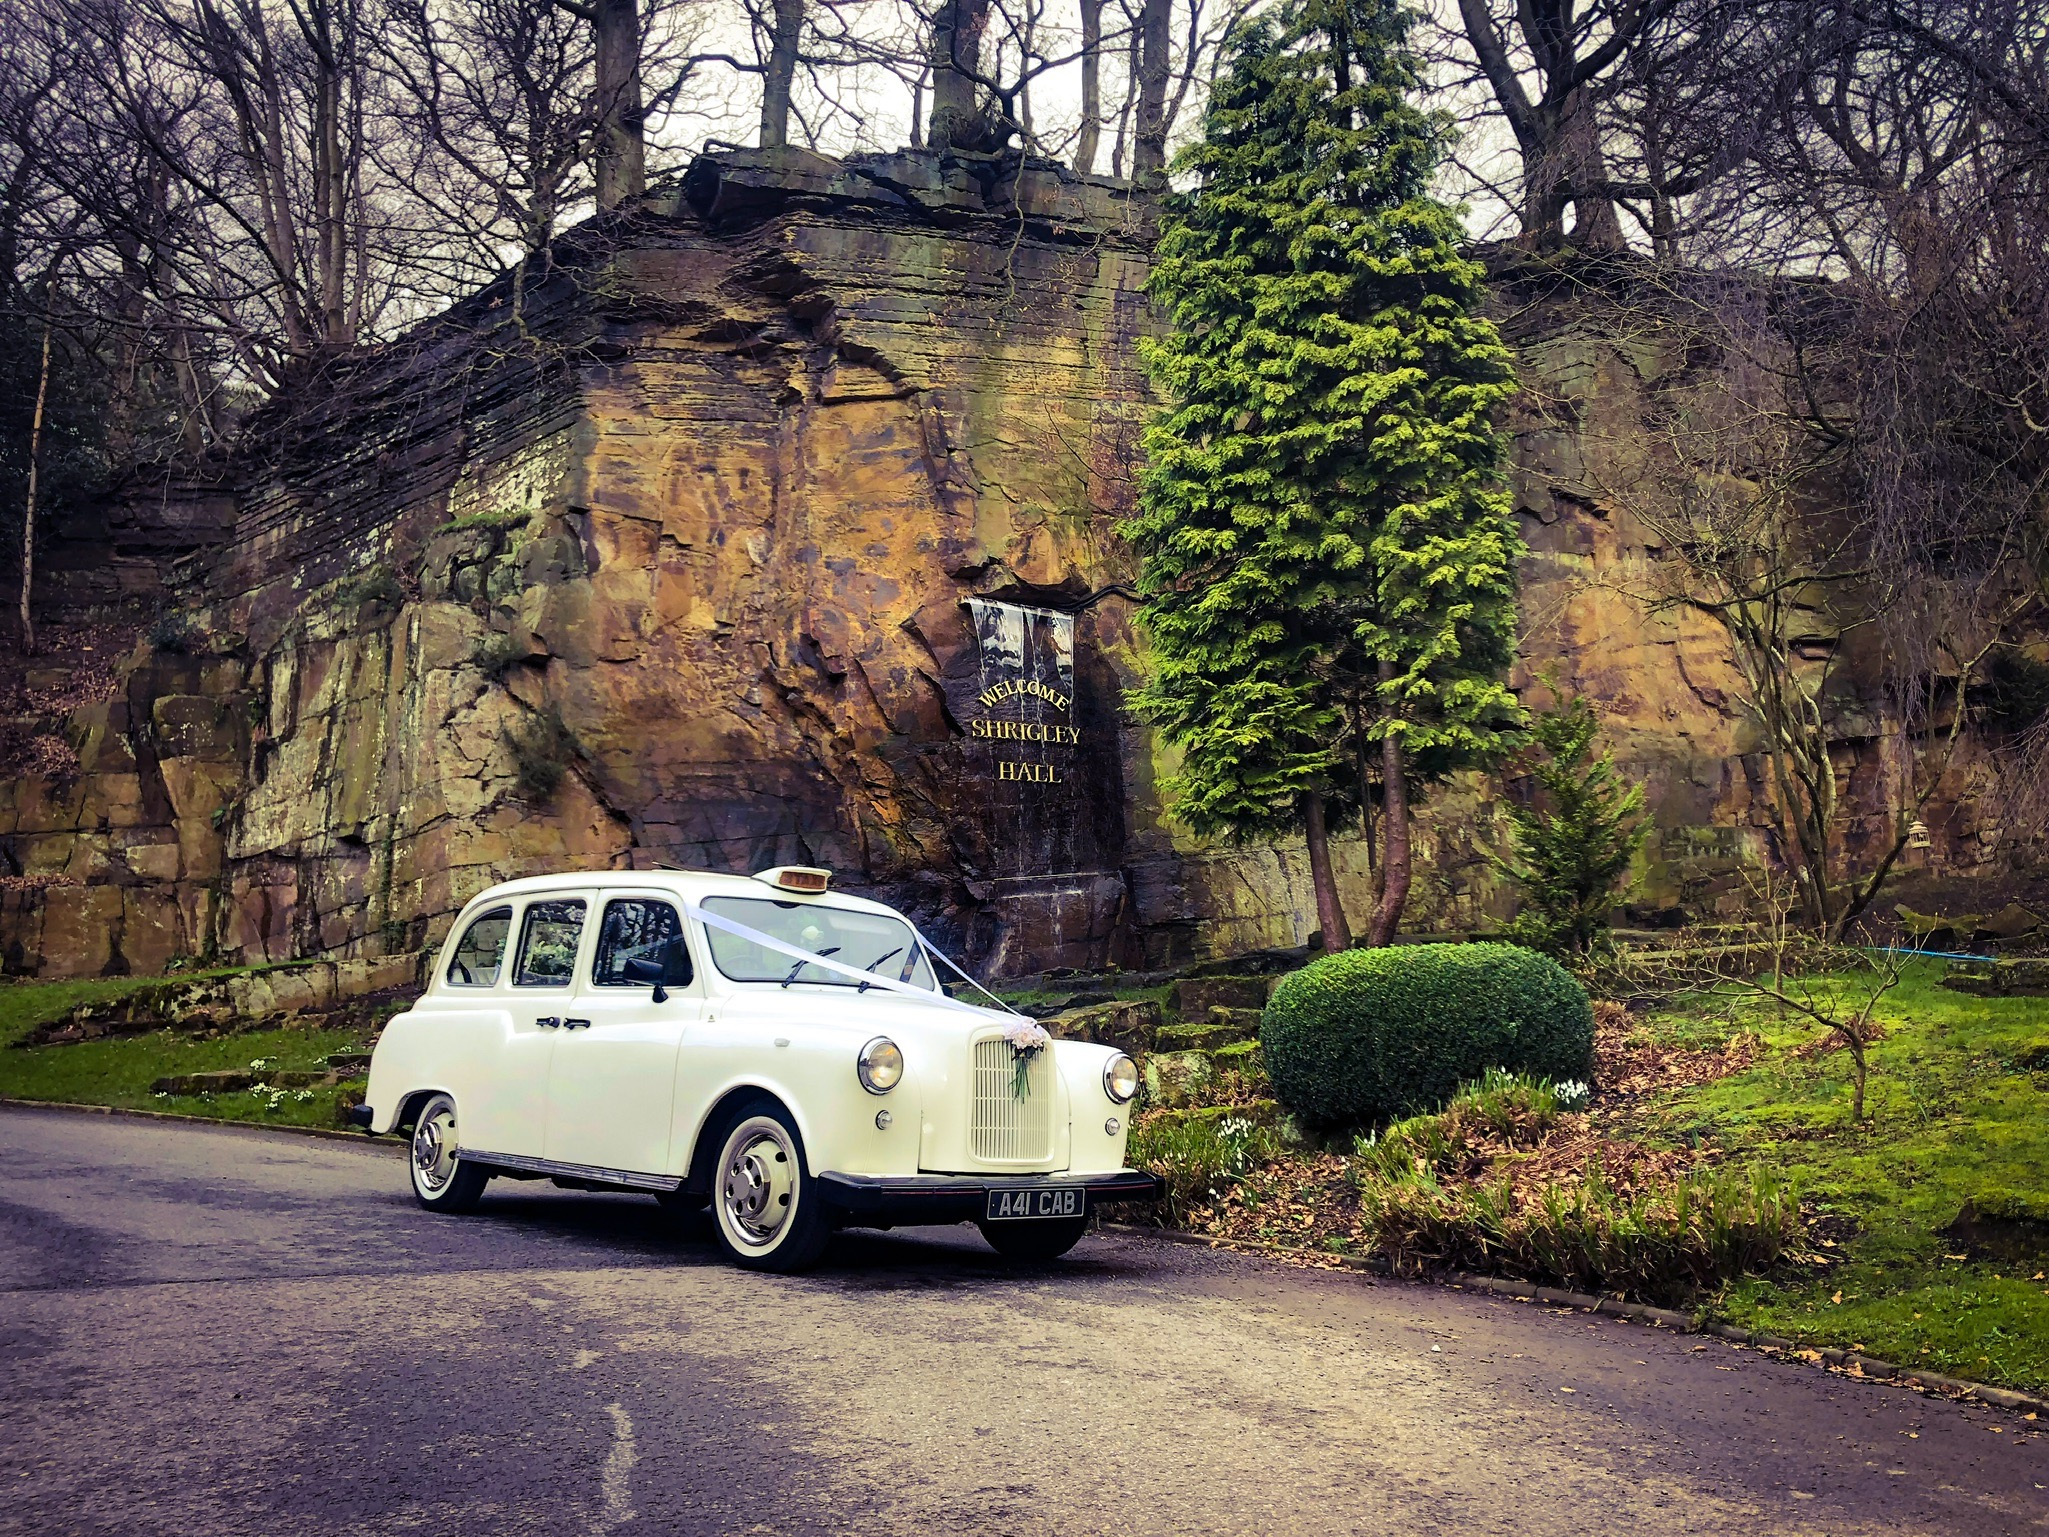 wedding taxi cars Shrigley Hall